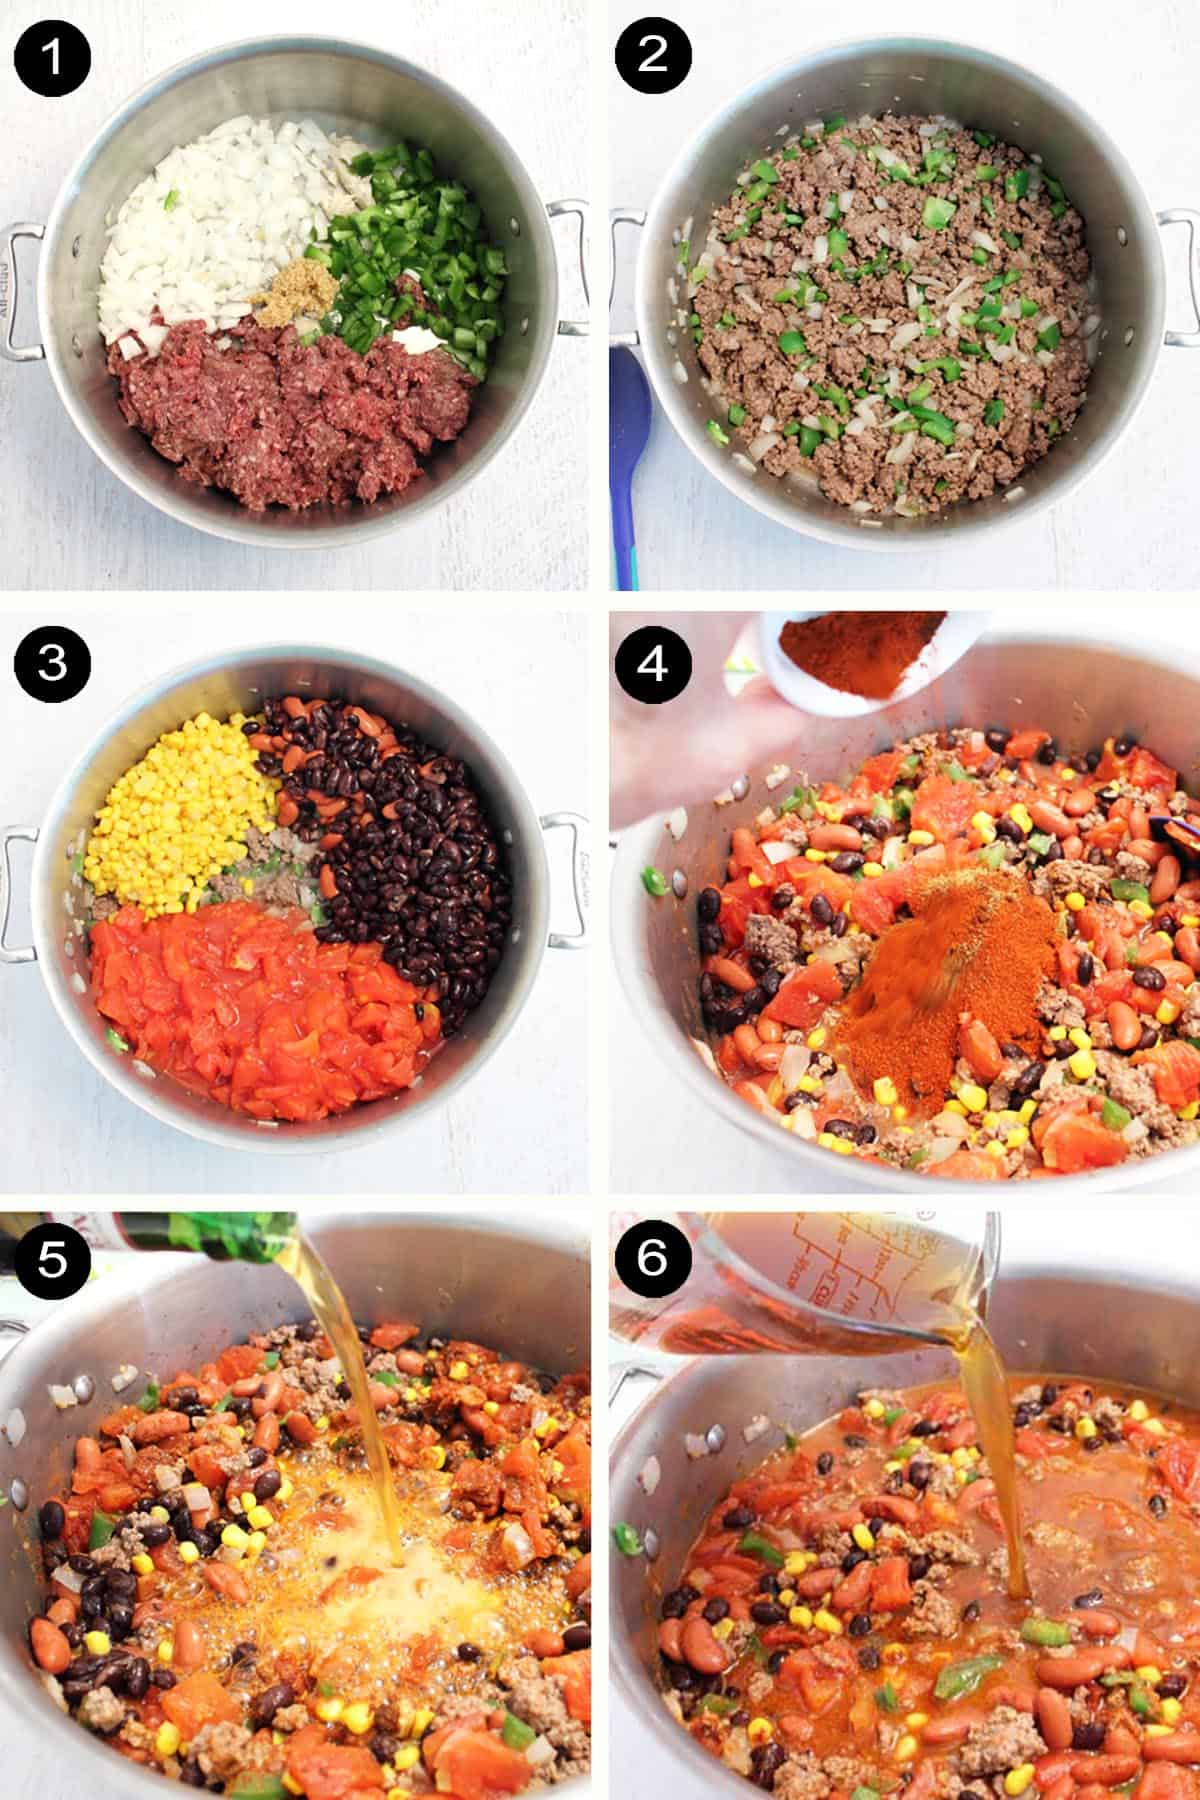 Prep steps for making Chipotle Beef Chili.